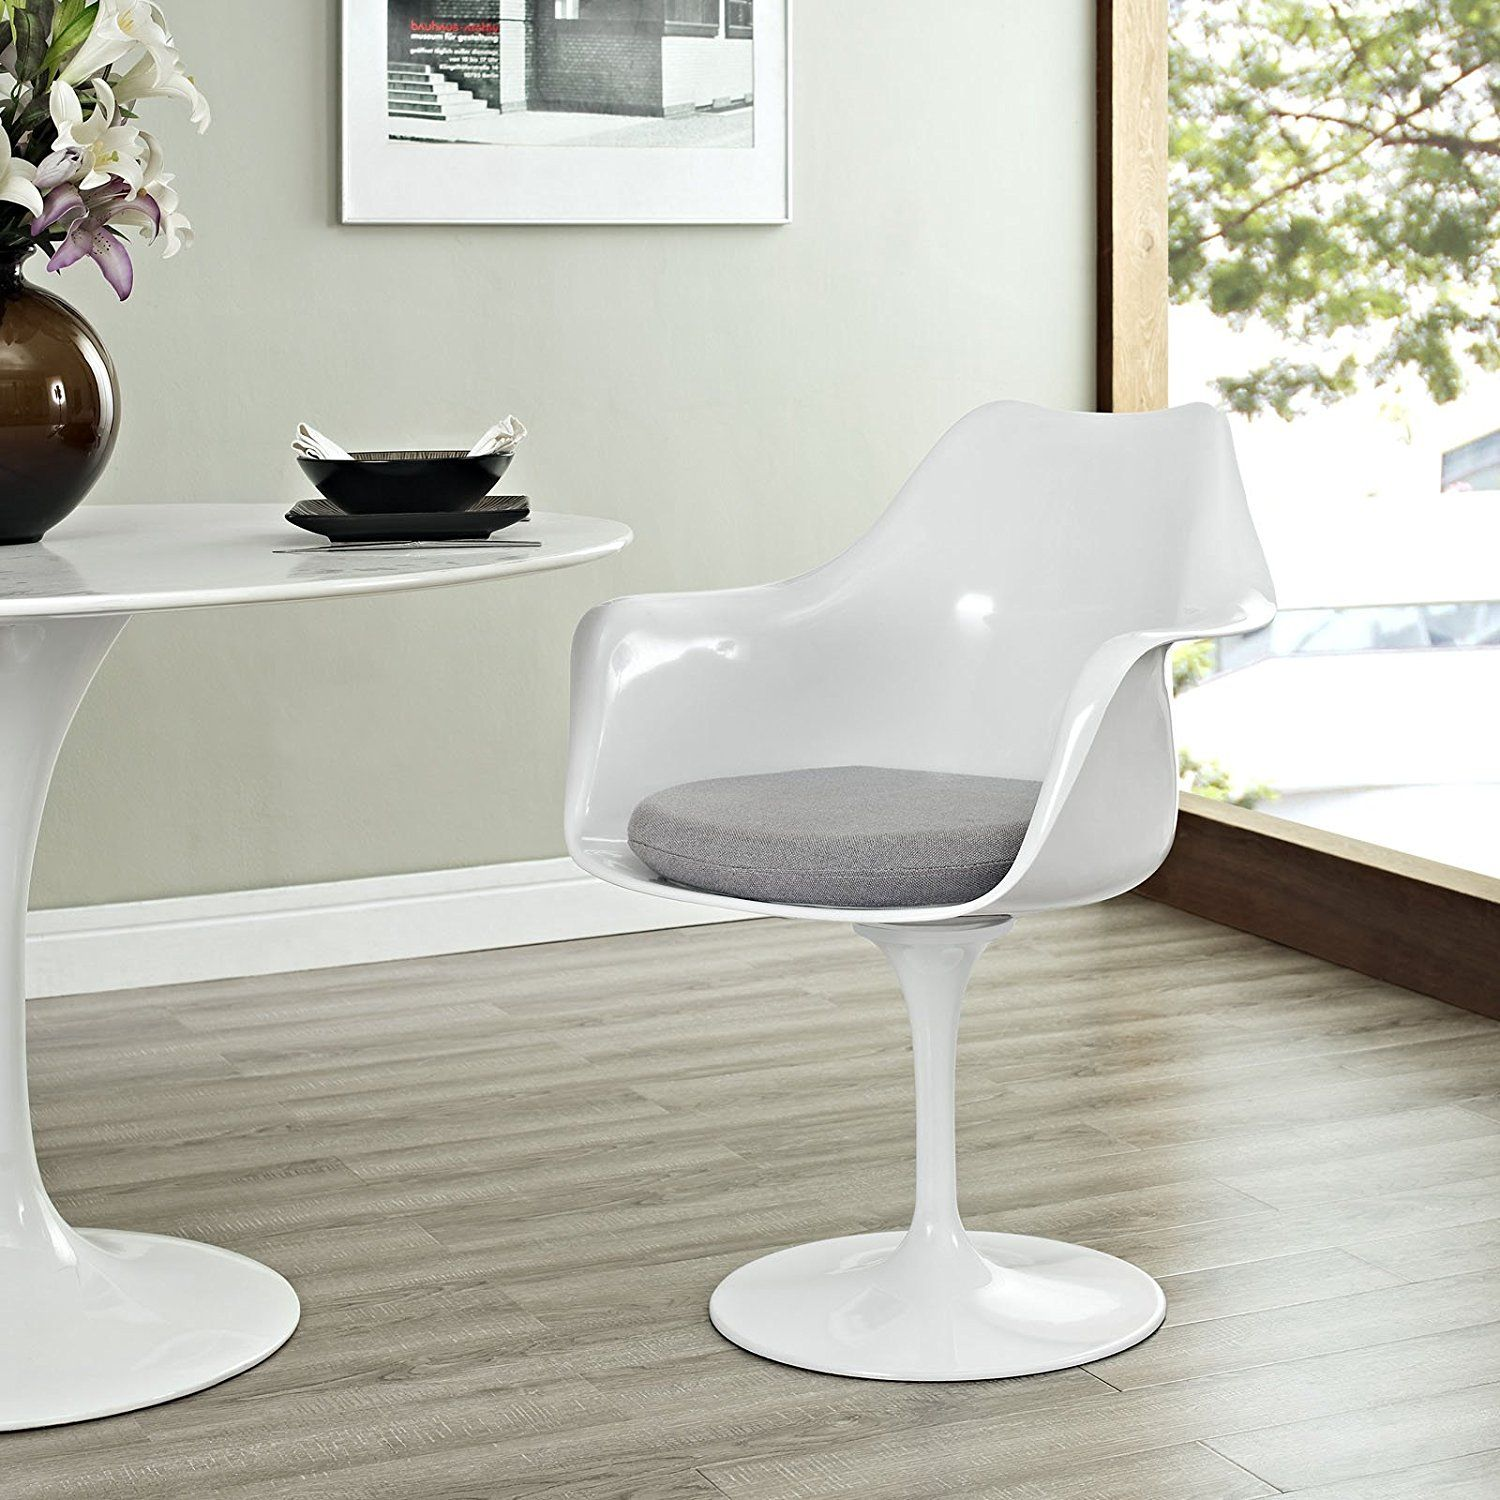 Awe Inspiring Lexmod Eero Saarinen Style Tulip Armchair With Red Cushion Andrewgaddart Wooden Chair Designs For Living Room Andrewgaddartcom